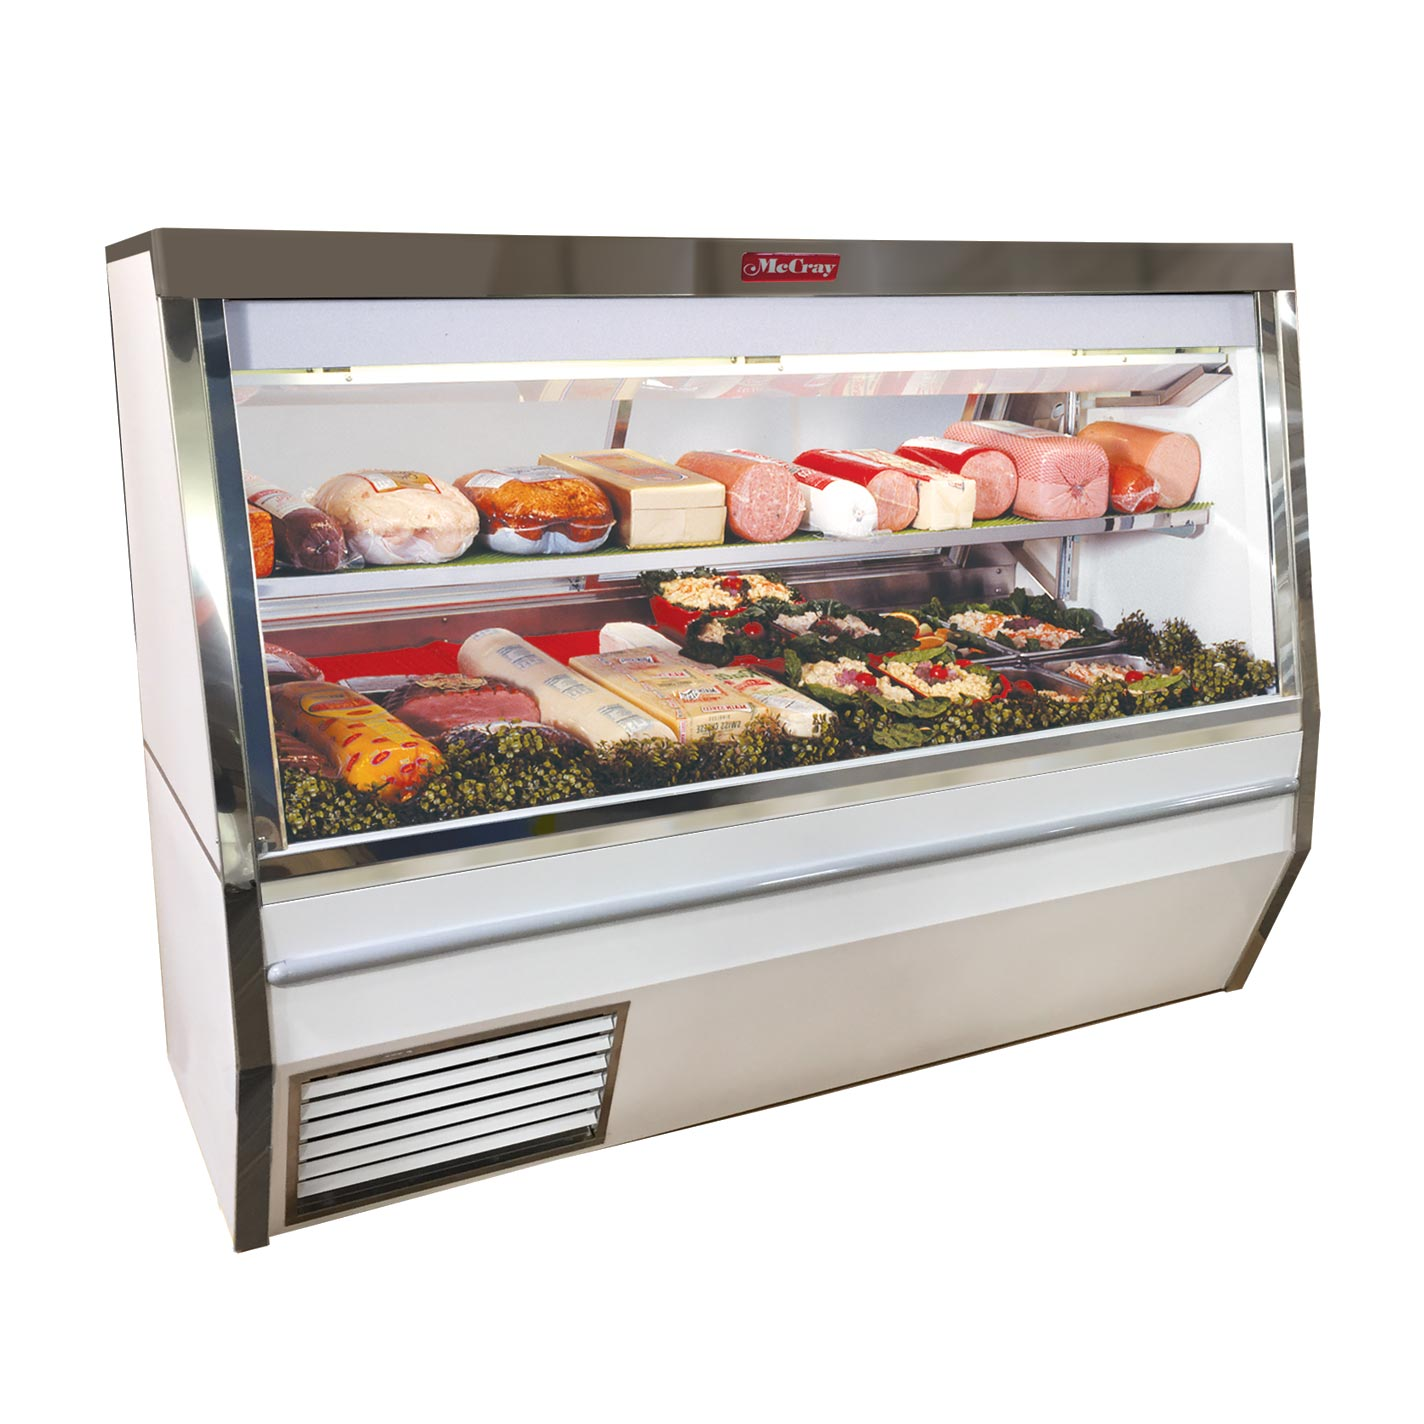 Howard-McCray R-CDS34N-12-S-LS-LED display case, refrigerated deli